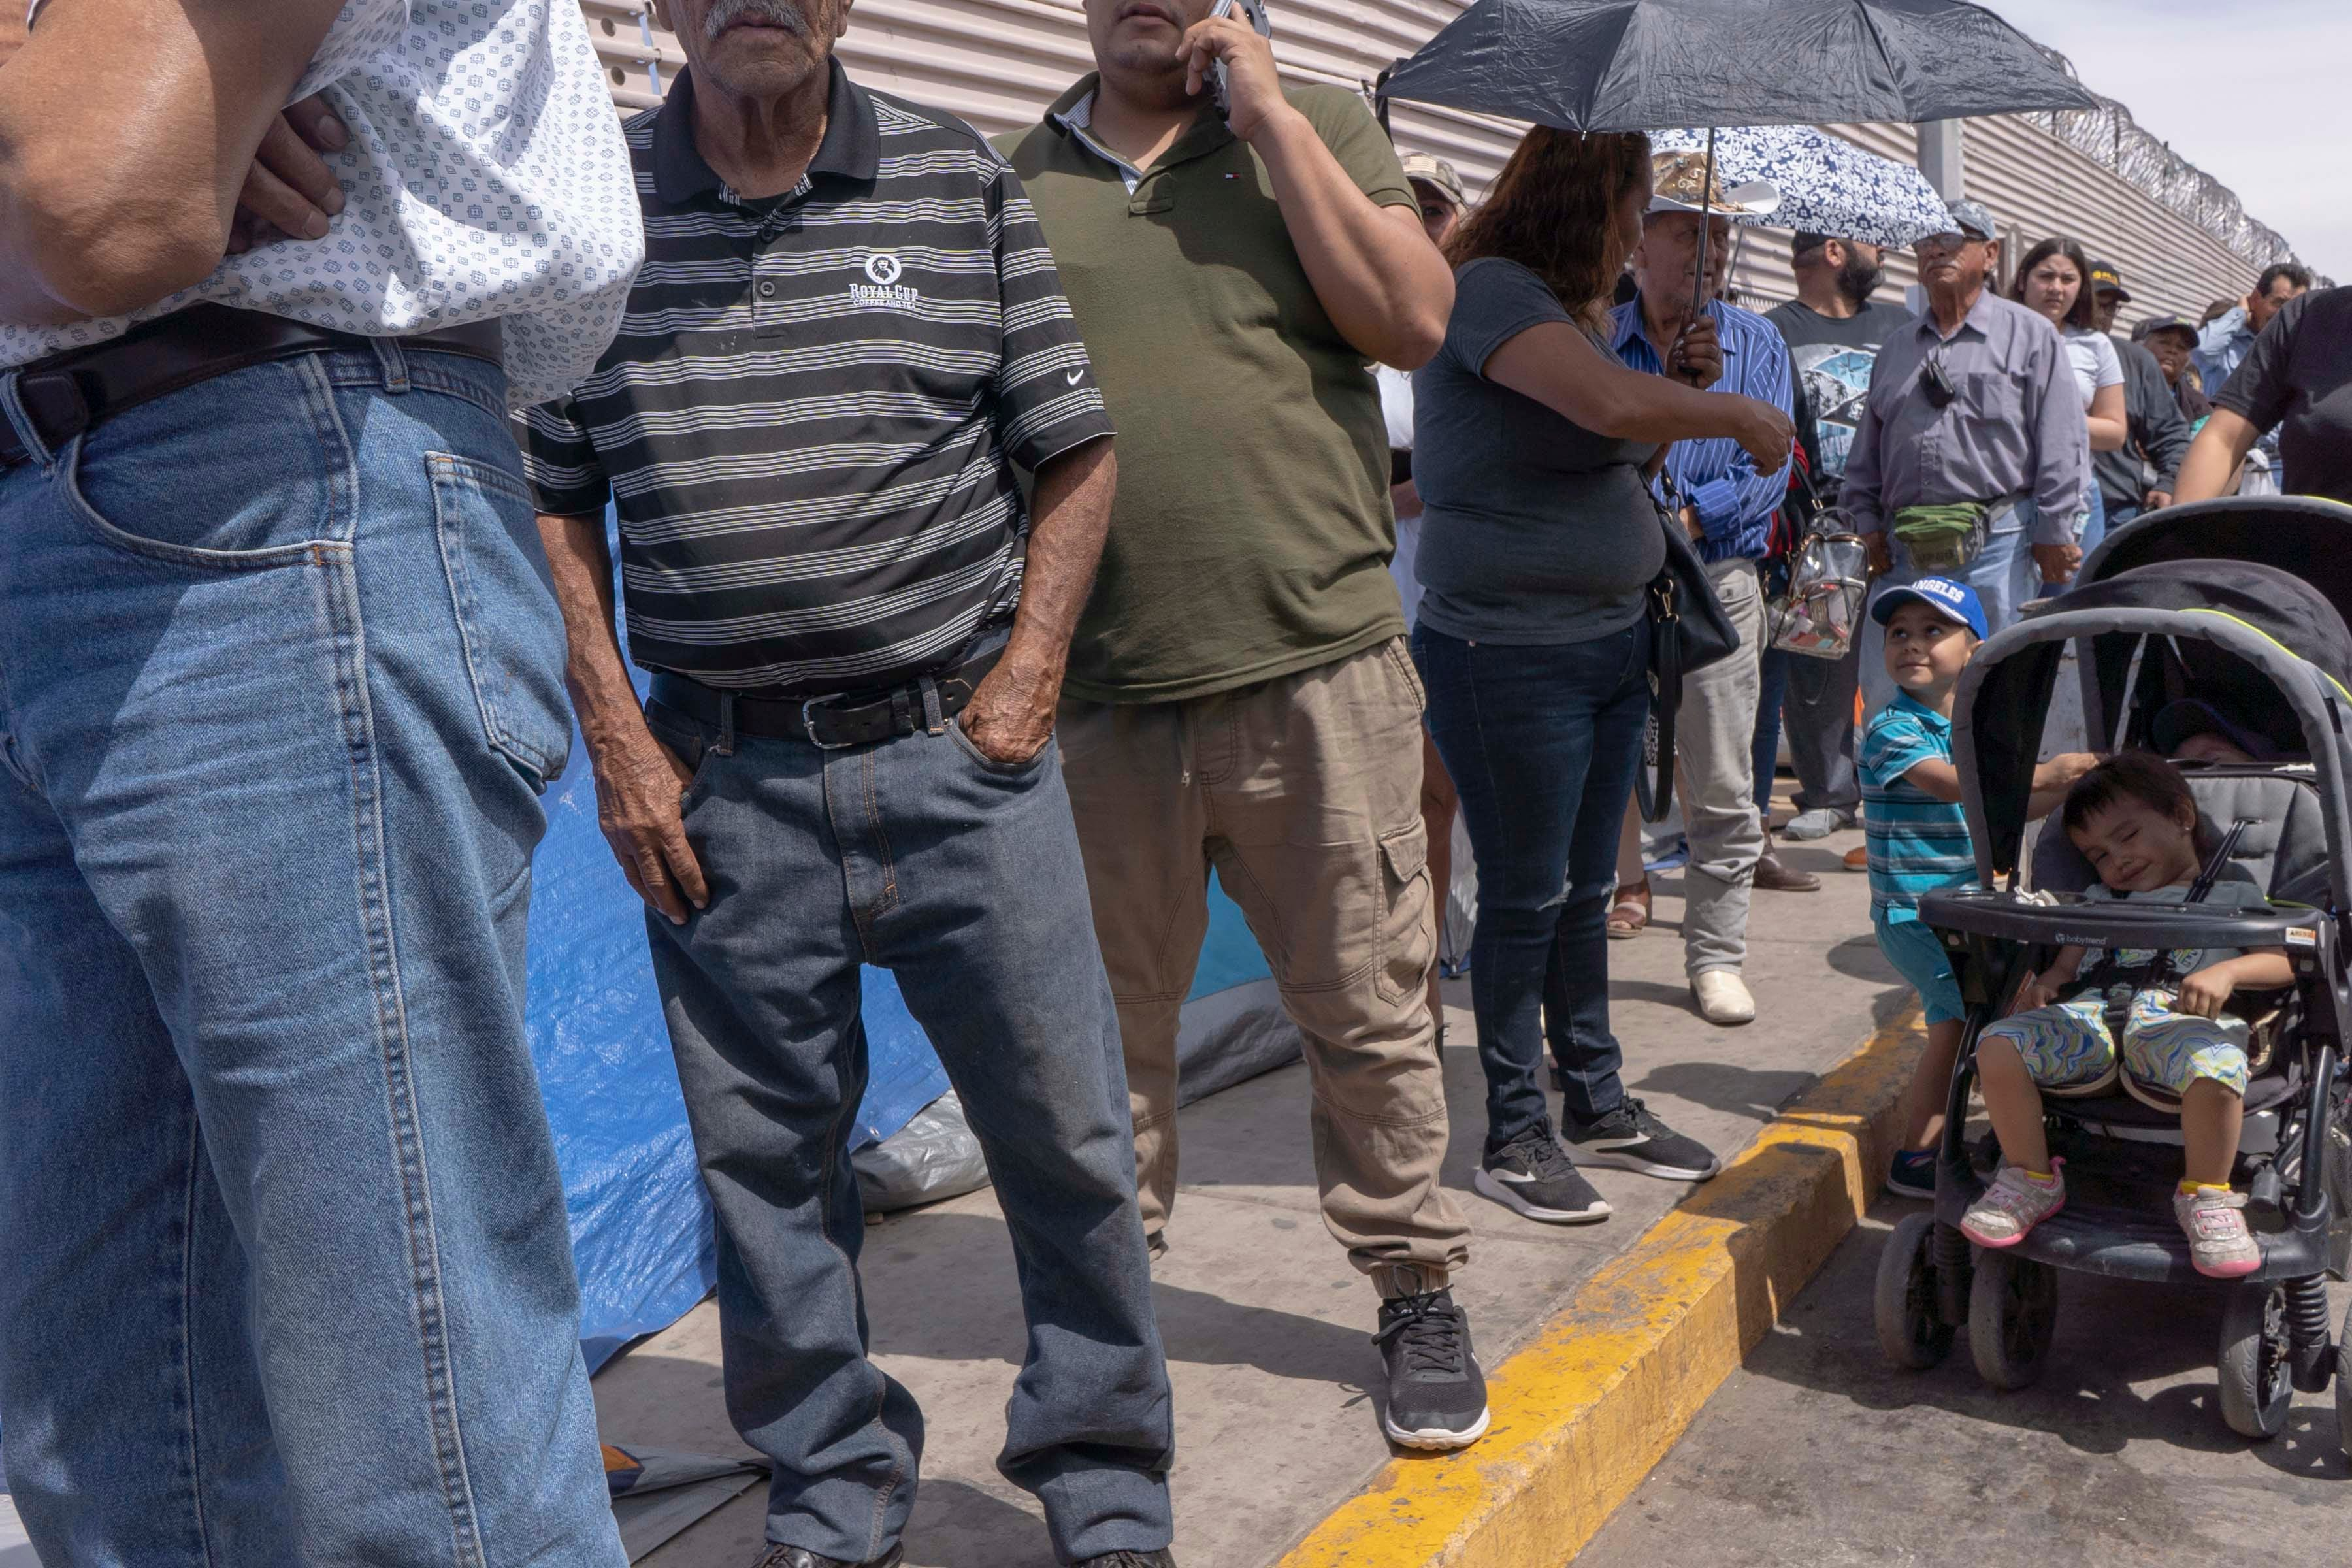 Asylum-seeking families with their children staying in tents housing waiting for their names to be called by Customs and Border Protection at the border in San Luis Rio Colorado, Mexico.